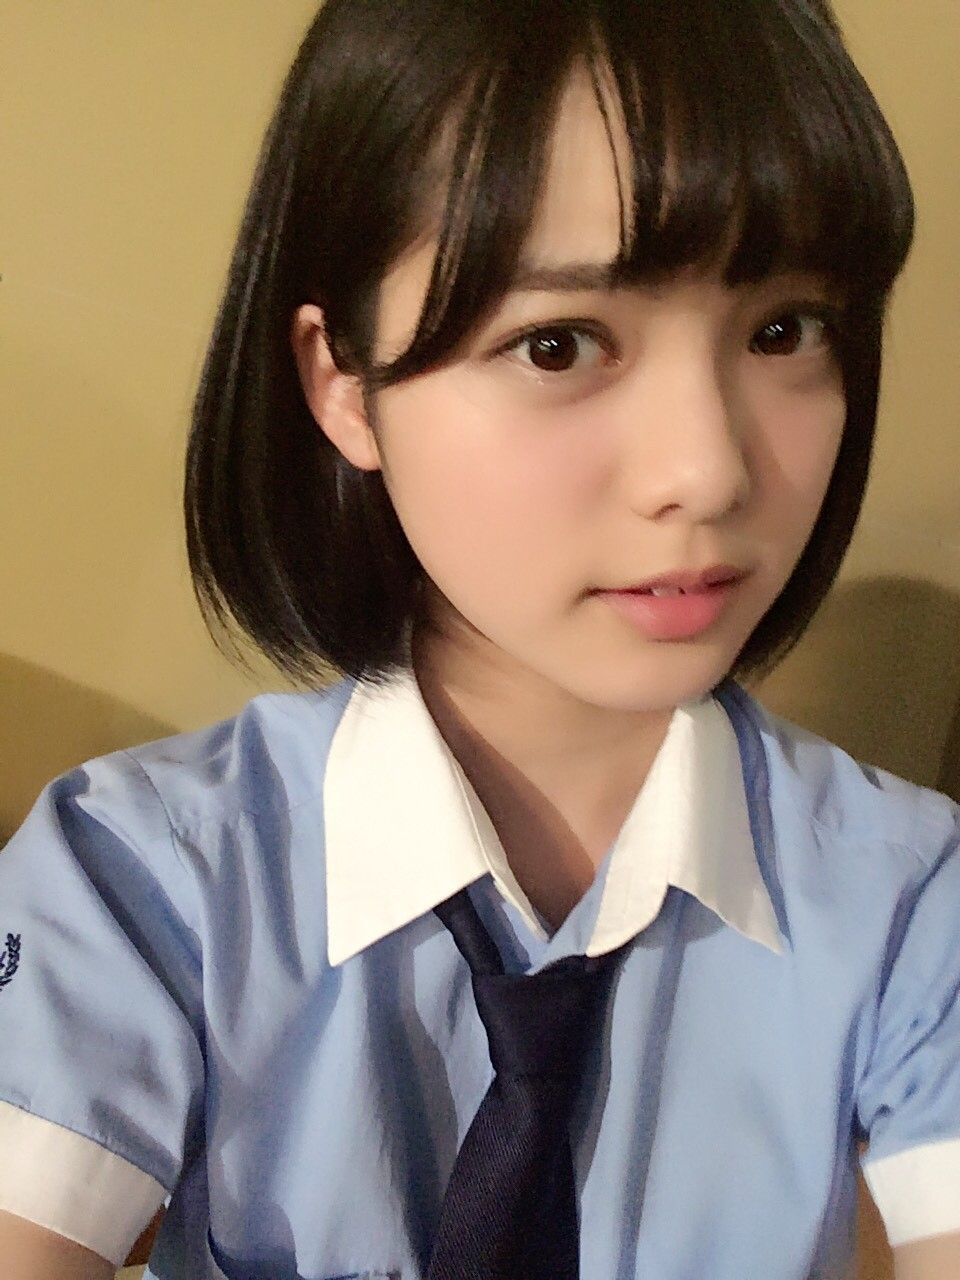 Japanese Cute Teen Girl